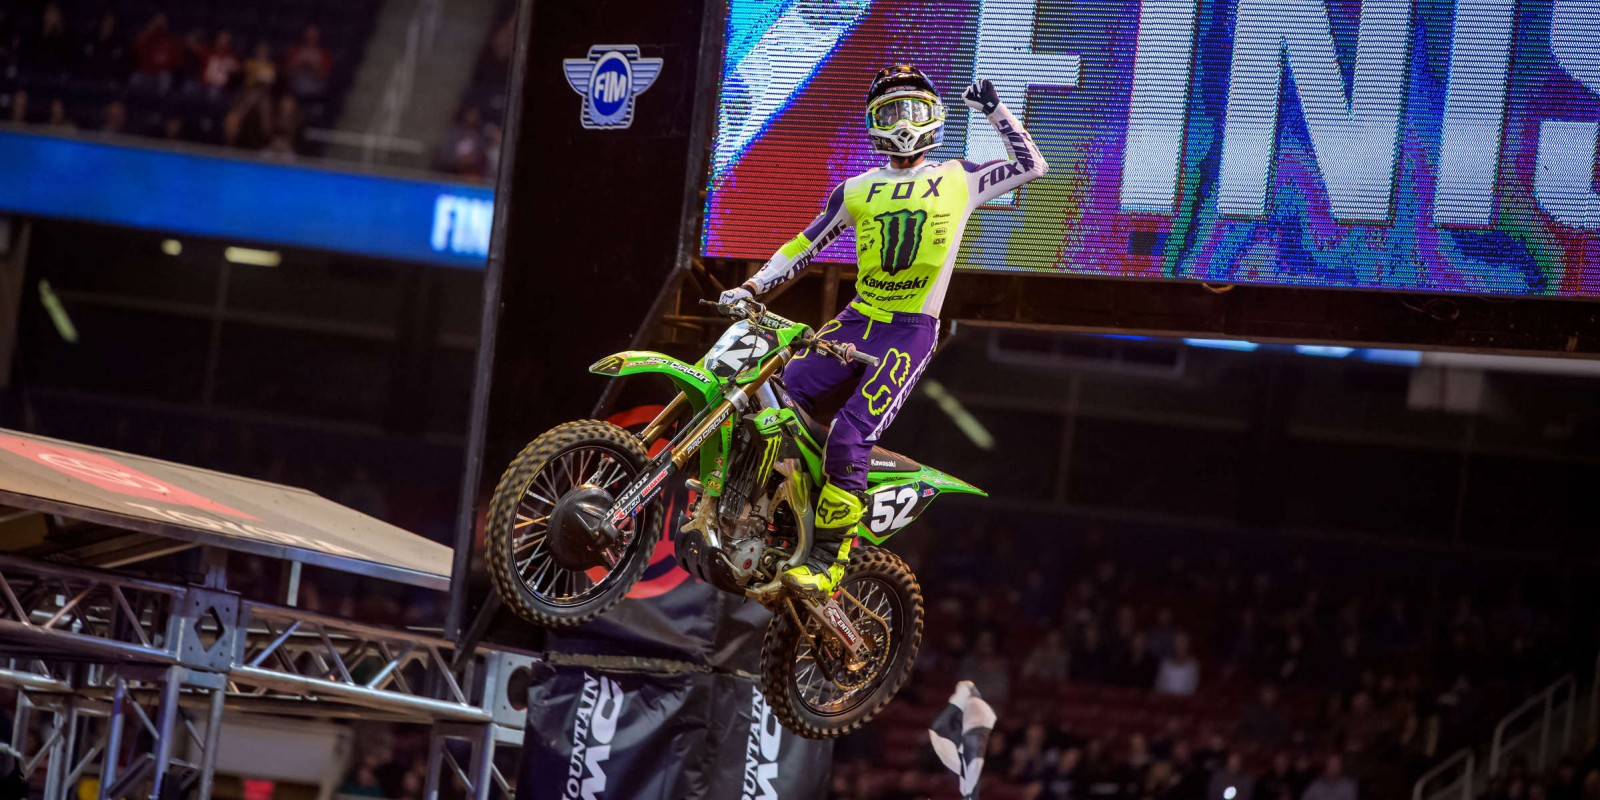 Images from 2020 Supercross in St. Louis, MO